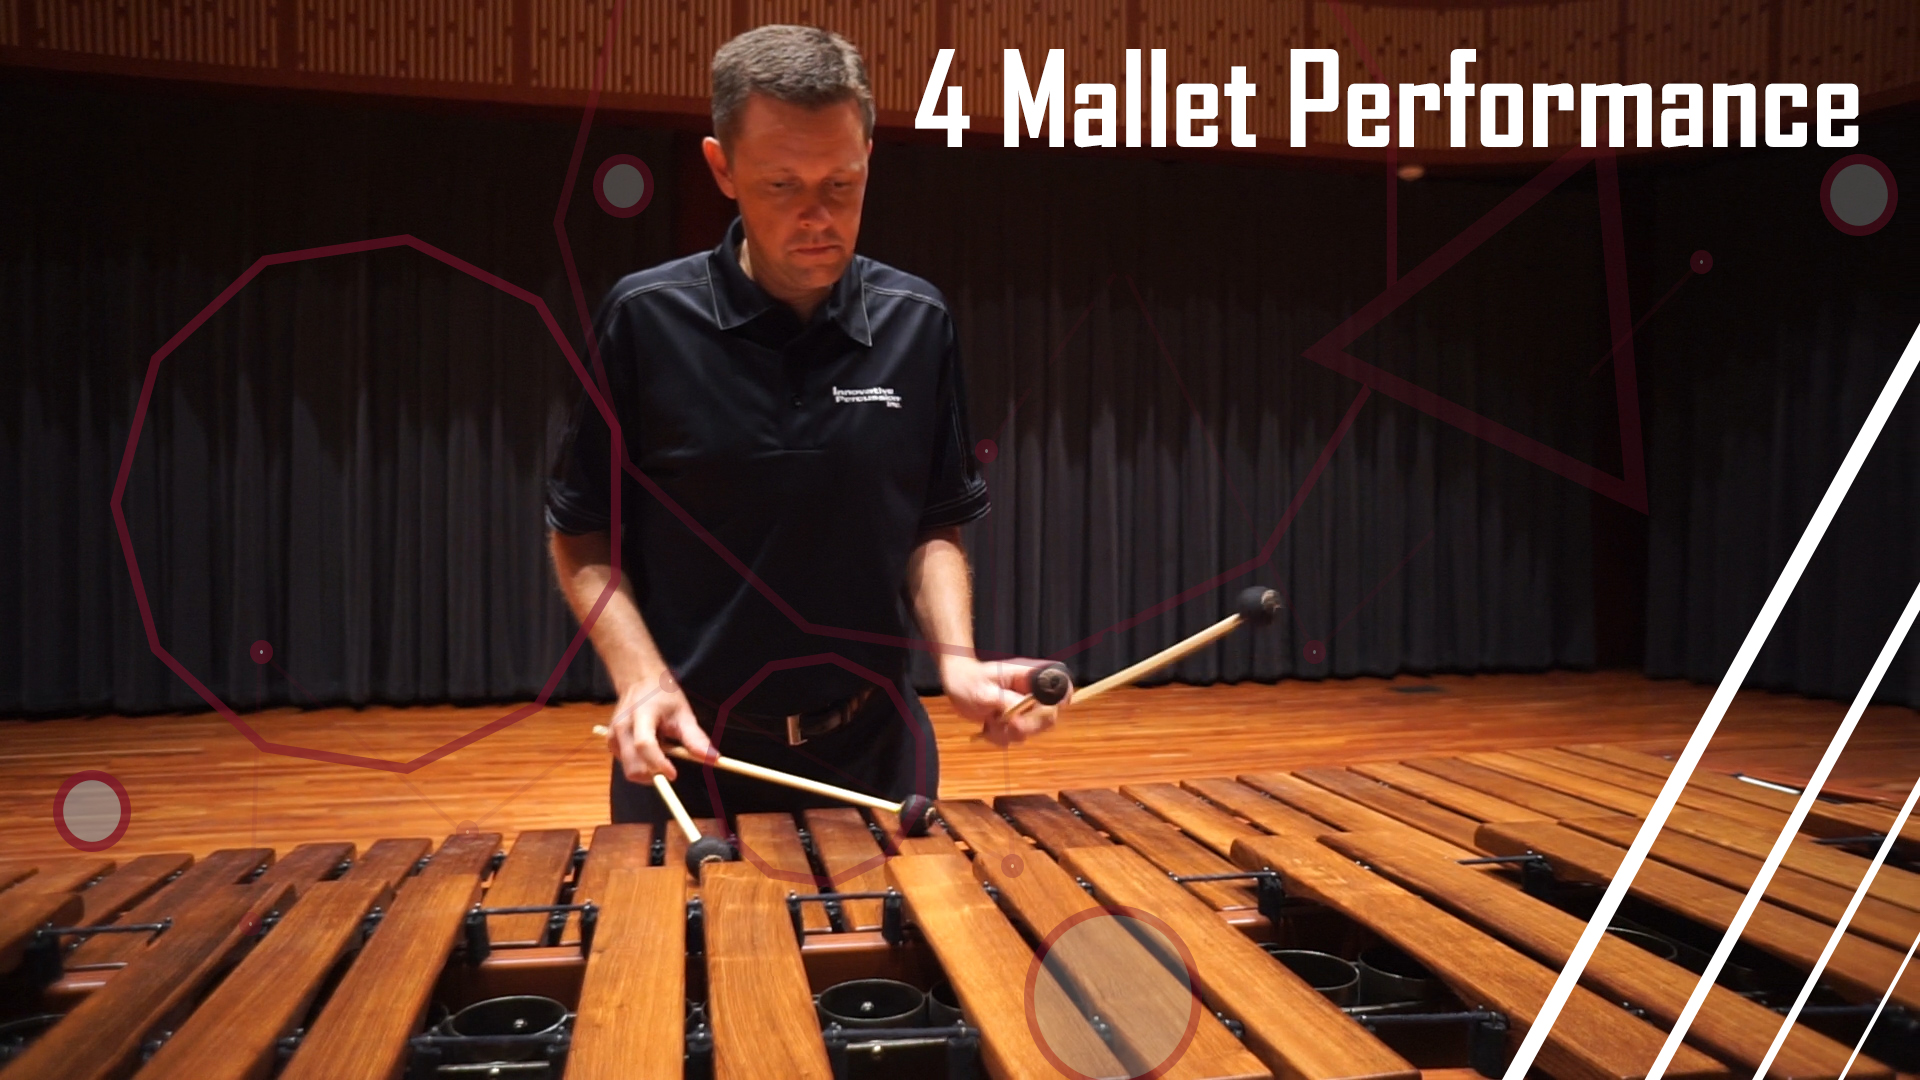 4 Mallet Performance